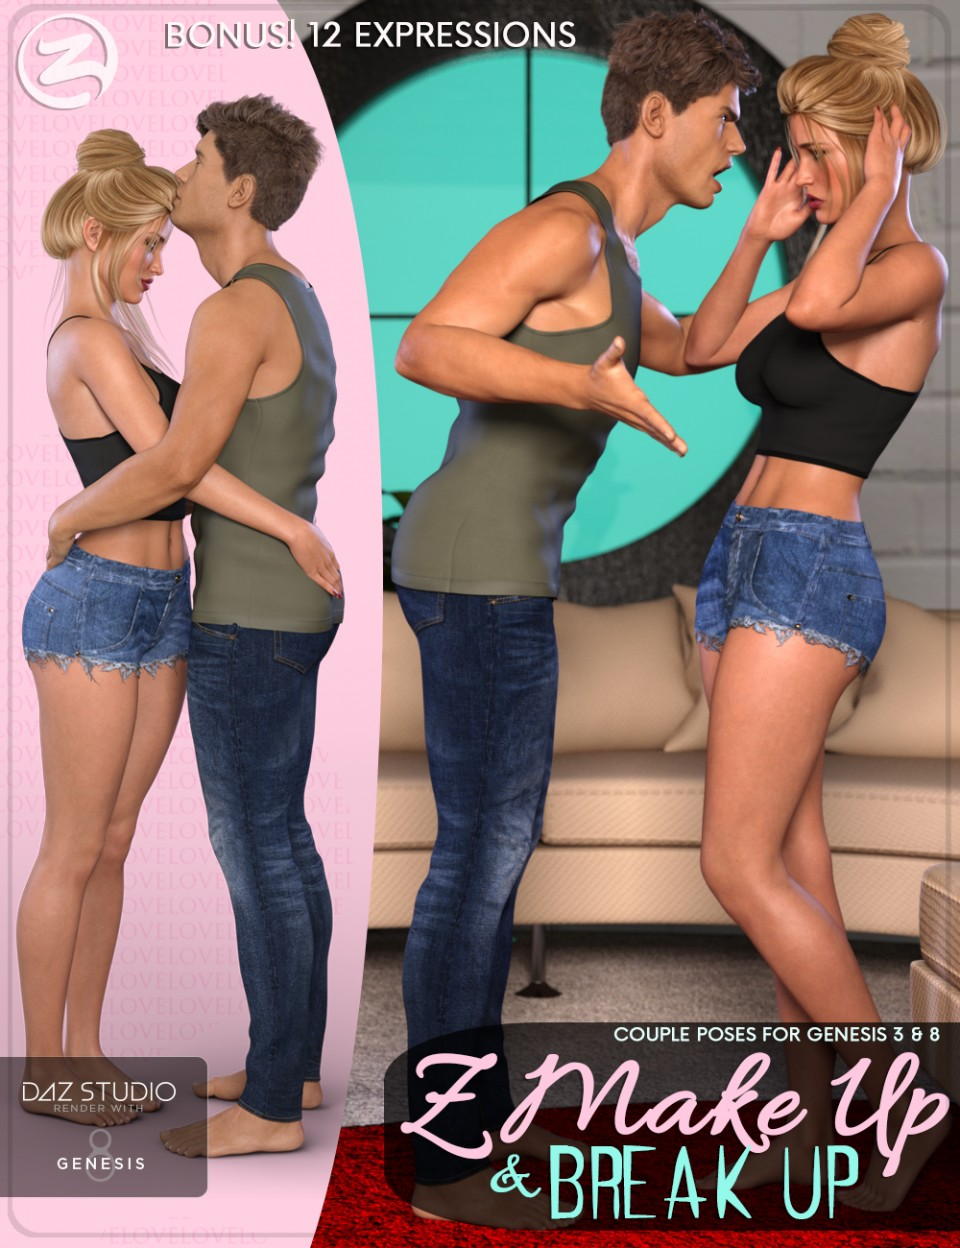 Z Make Up and Break Up – Couple Poses and Expressions for Genesis 3 & 8_DAZ3D下载站